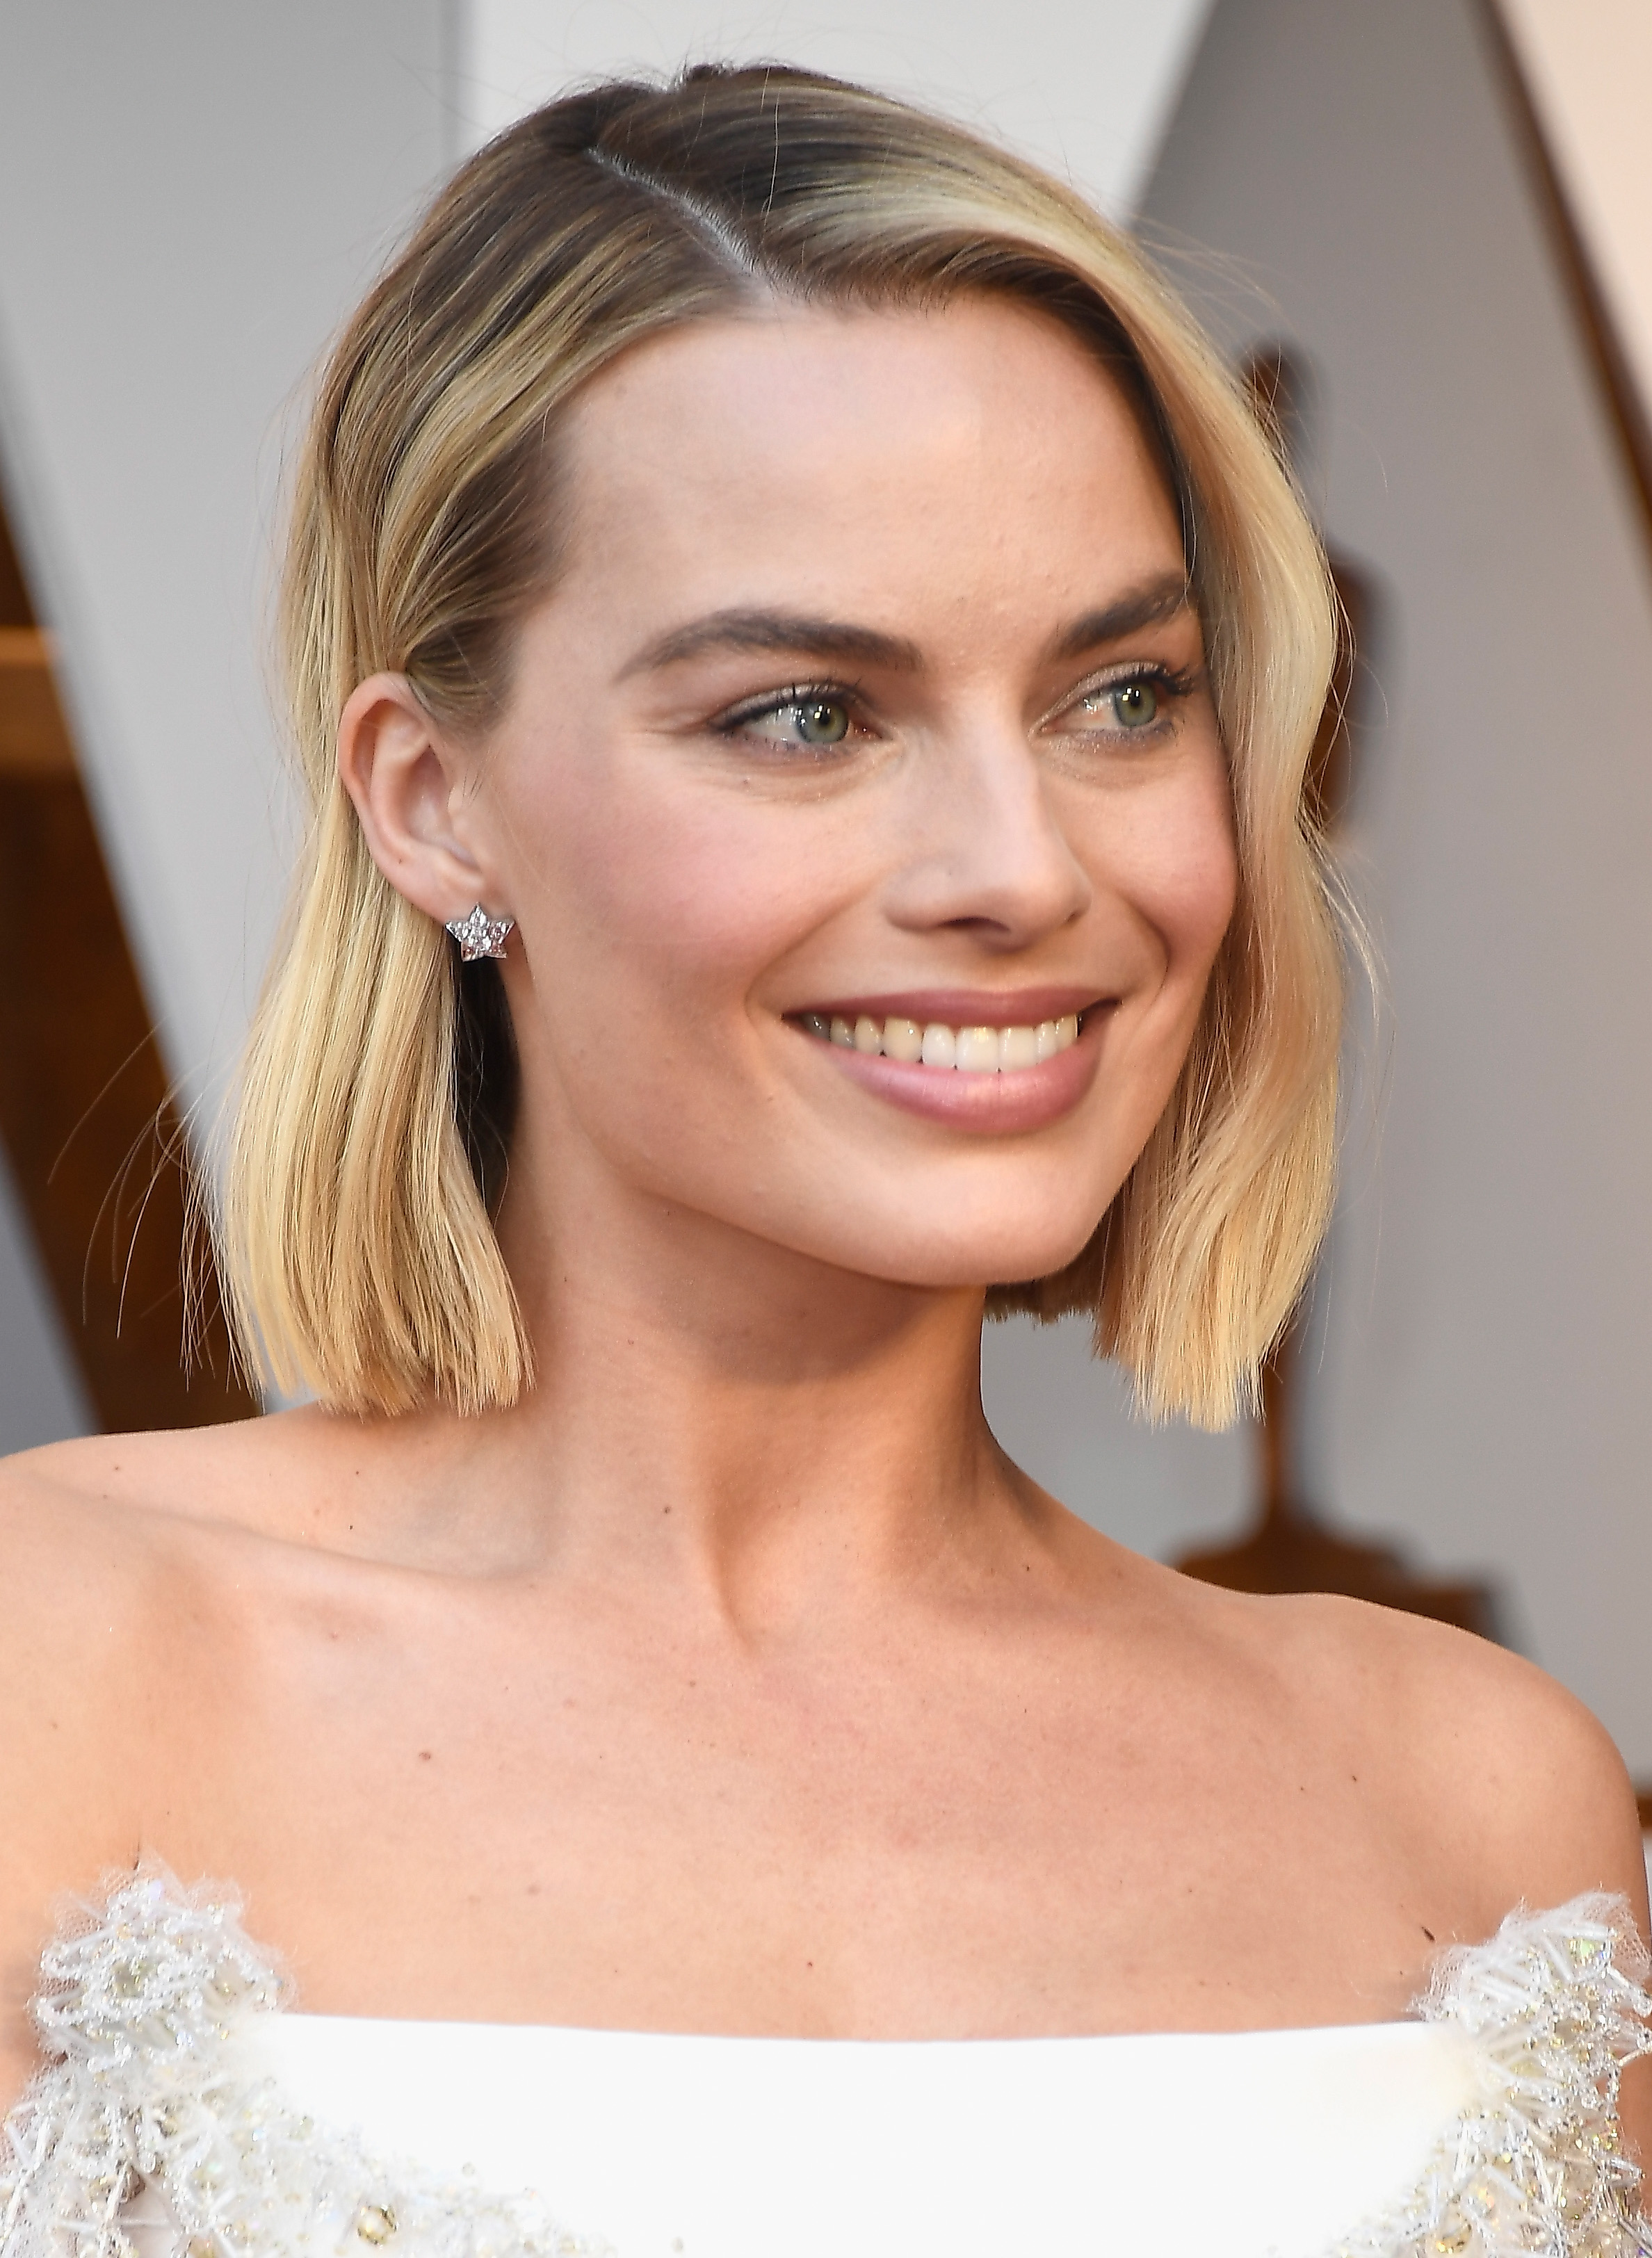 <p>While the start to the award season has seen some daring hair and make-up looks to date, the Oscar Awards saw much more subdued looks taking centre stage.</p> <p>Nude and soft pink lips, champagne lids and blush cheeks reigned supreme on the 2018 Academy Awards red carpet this year.</p> <p>Keeping things real, Oscar-winner Frances McDormand ditched the make-up all together for au naturale look and Salma Hayek let her natural grey hairs shine though.</p> <p>Meanwhile, not everyone adopted the minimal approach. </p> <p>Jennifer Lawrence's voluminous curls and Lupita Nyong'o's gold highlighter and striking blue eye-shadow shook things up.</p> <p>Click through to see the winning looks and trends from film's biggest night.</p>